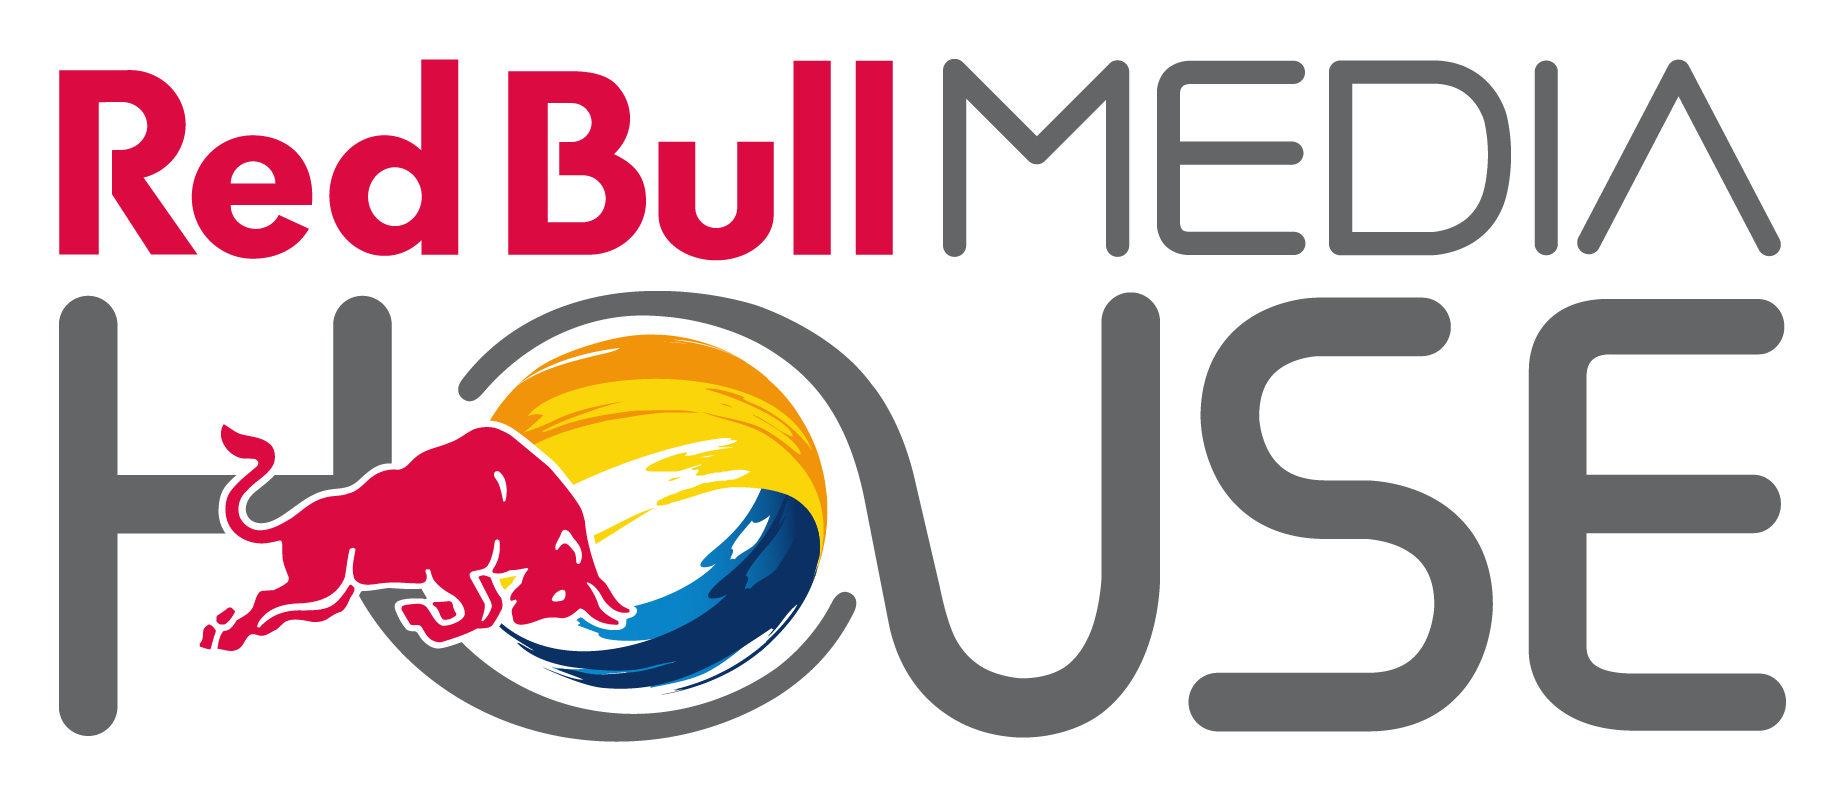 Red bull media house is on a mission to inspire with beyond the ordinary sports culture and lifestyle entertainment contact red bull